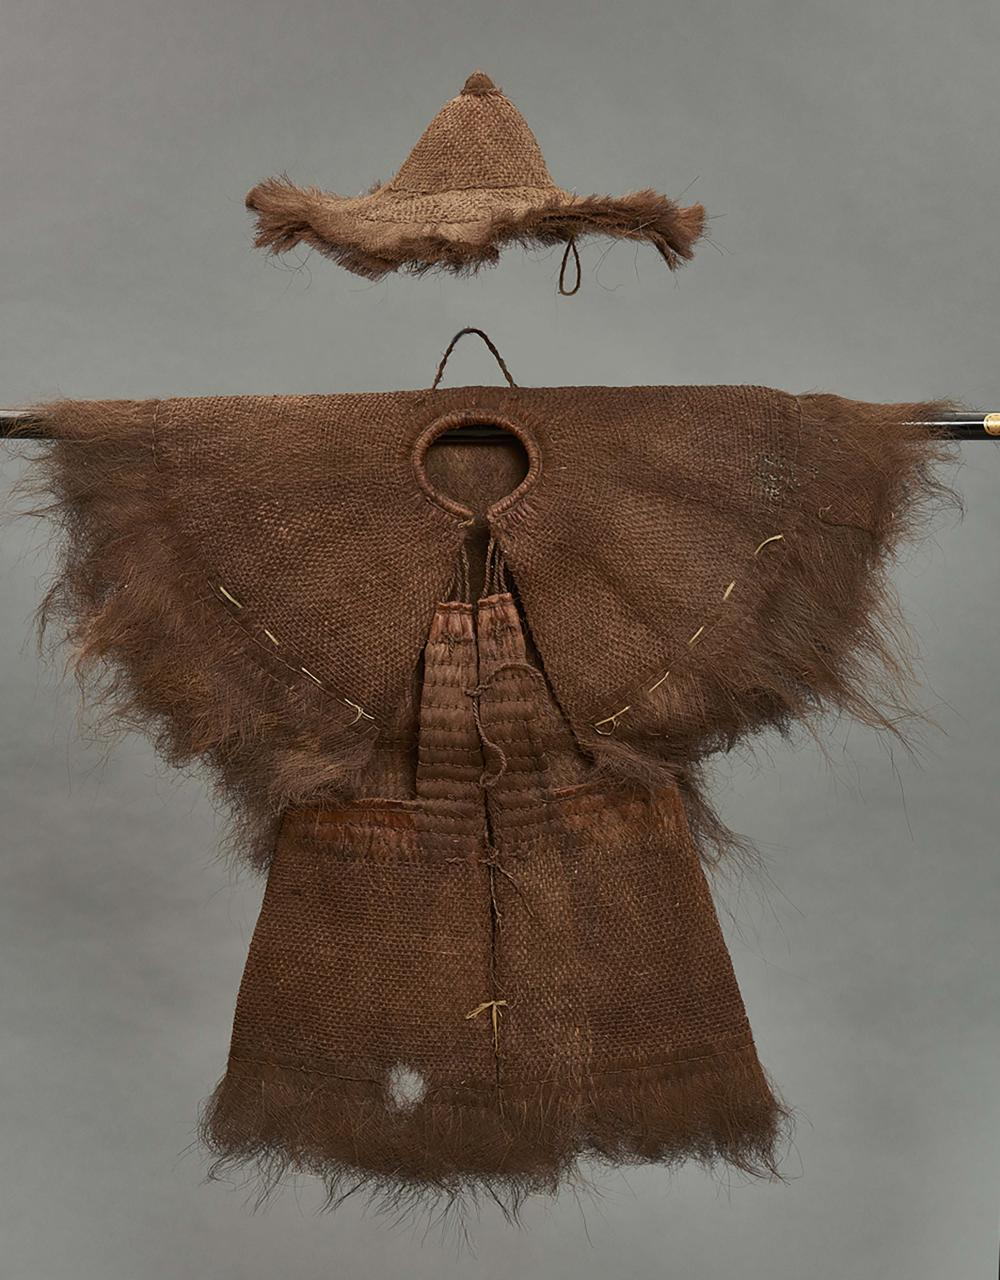 Straw raincoat (mino) used by fishermen and farmers together with a matchin